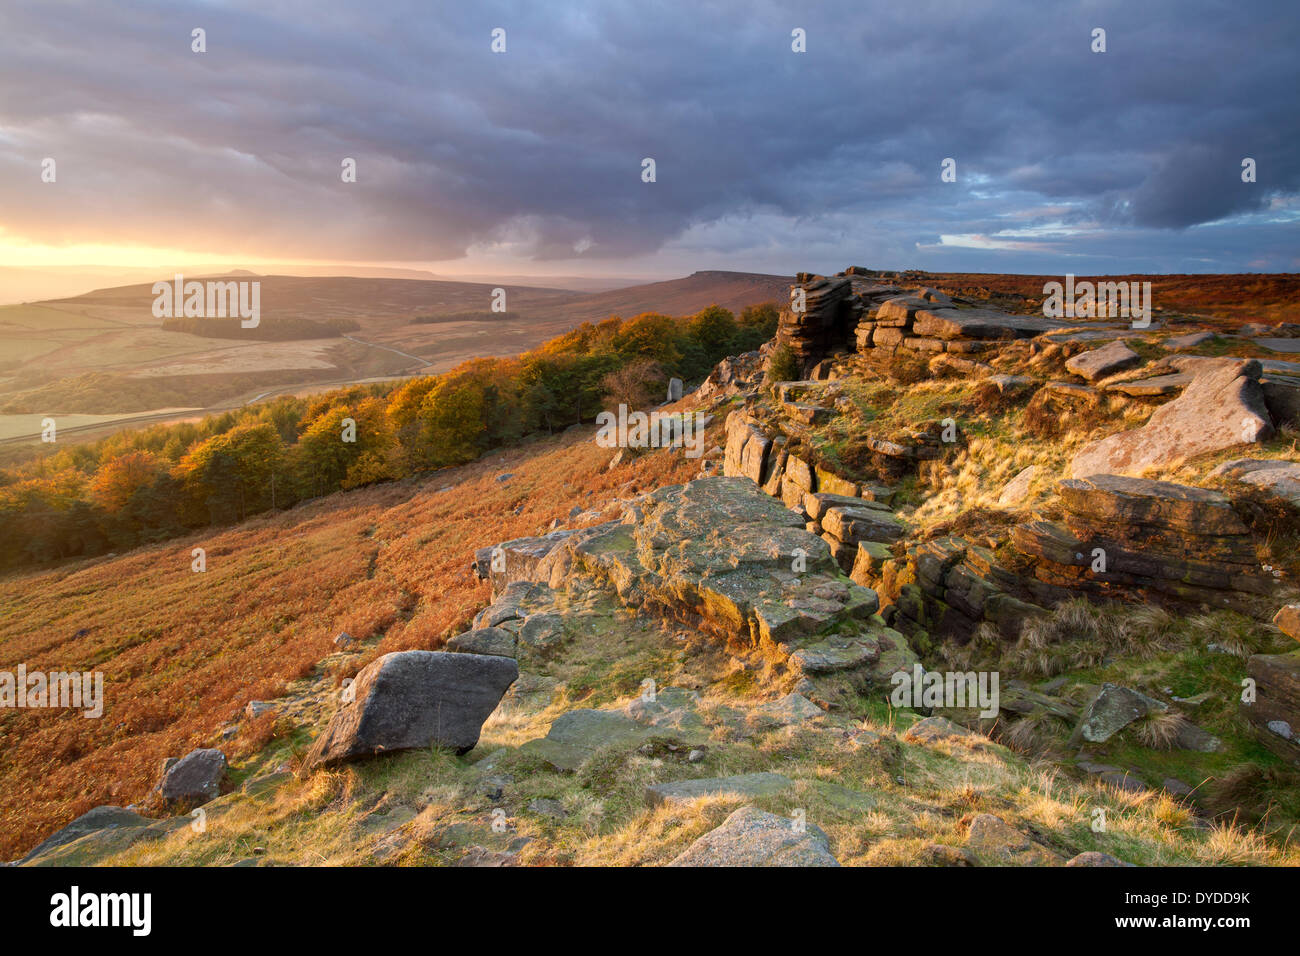 A dramatic autumnal sunset over Stanage Edge in the Peak District National Park. - Stock Image